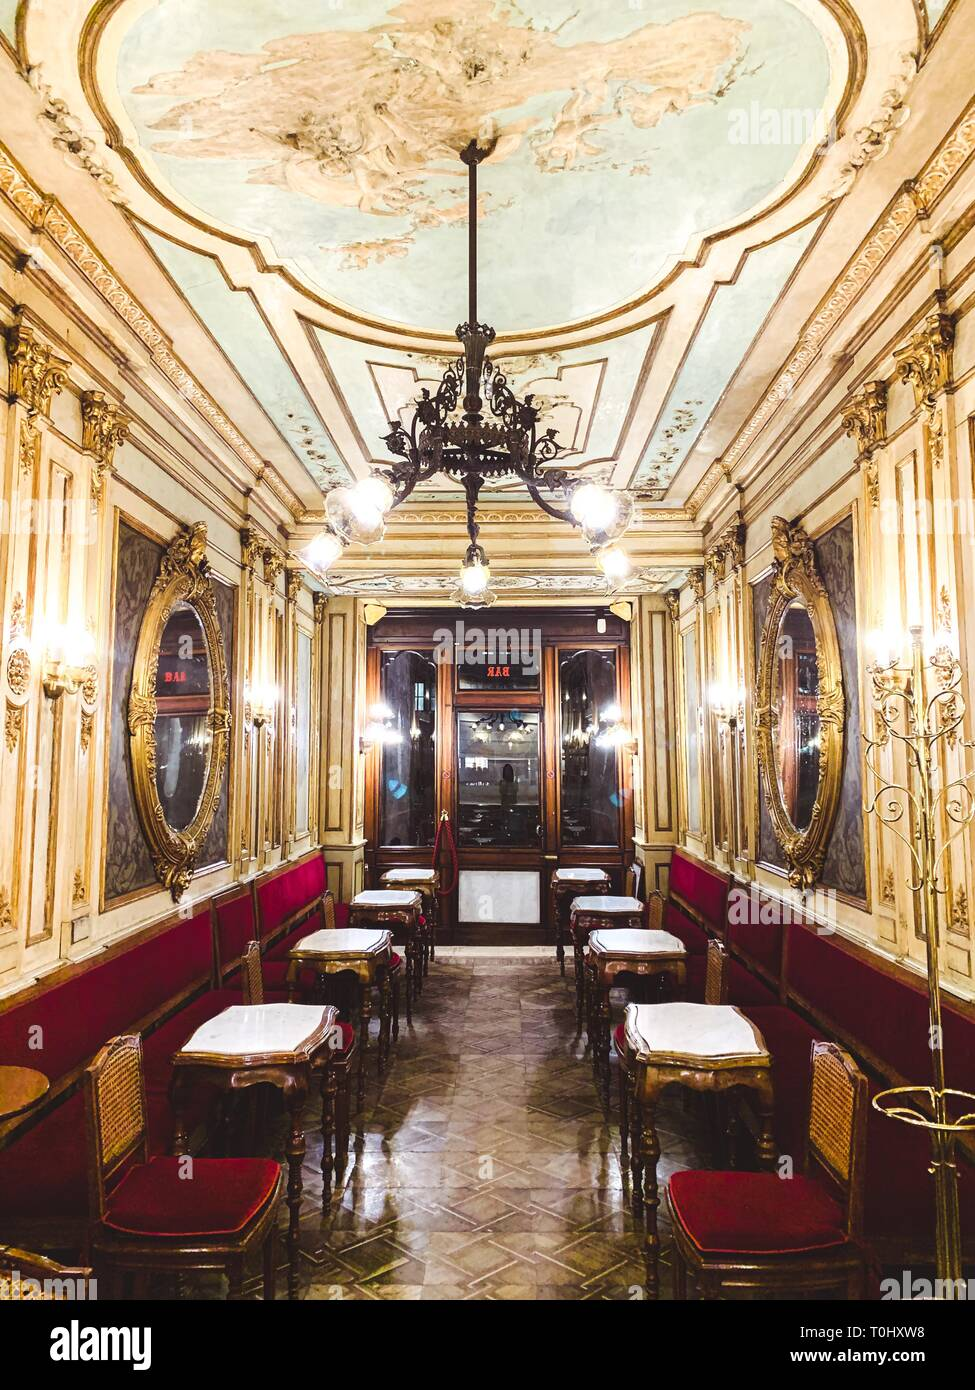 Caffe Florian, coffee house, situated in San Marco square, the oldest coffee house in continuous operation. - Stock Image